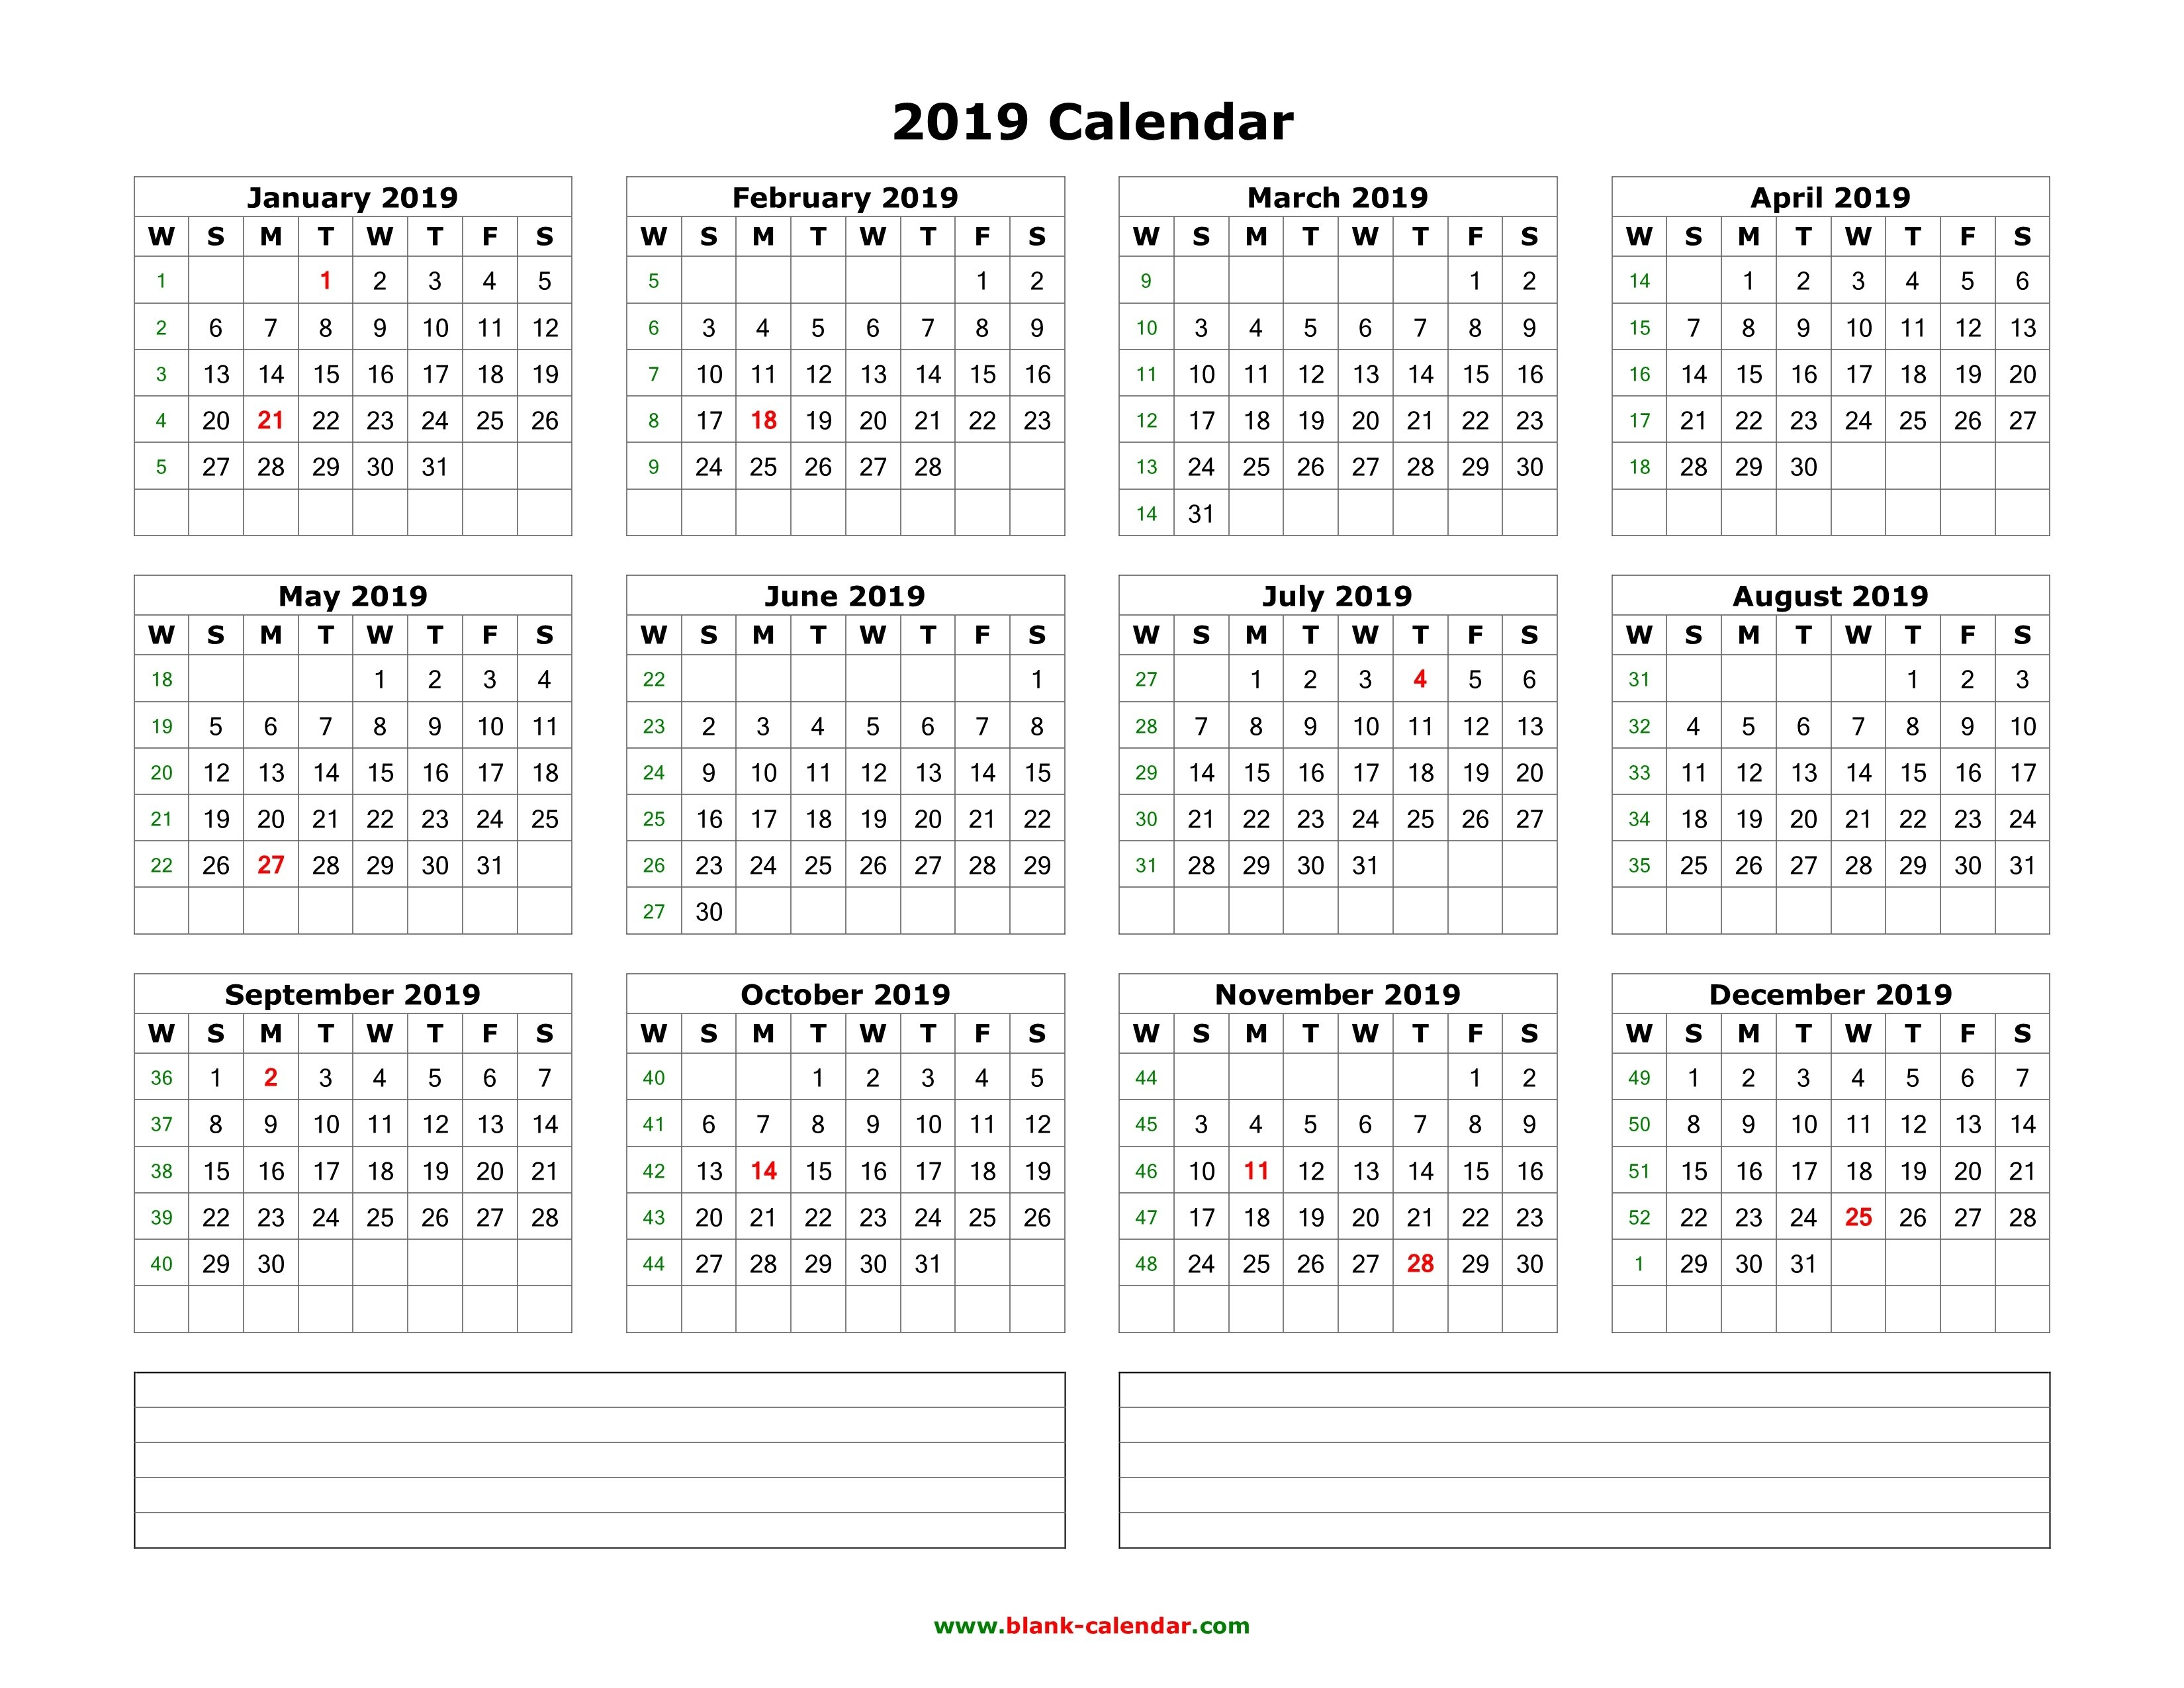 Download Blank Calendar 2019 With Space For Notes (12 Months On One Calendar 2019 12 Months